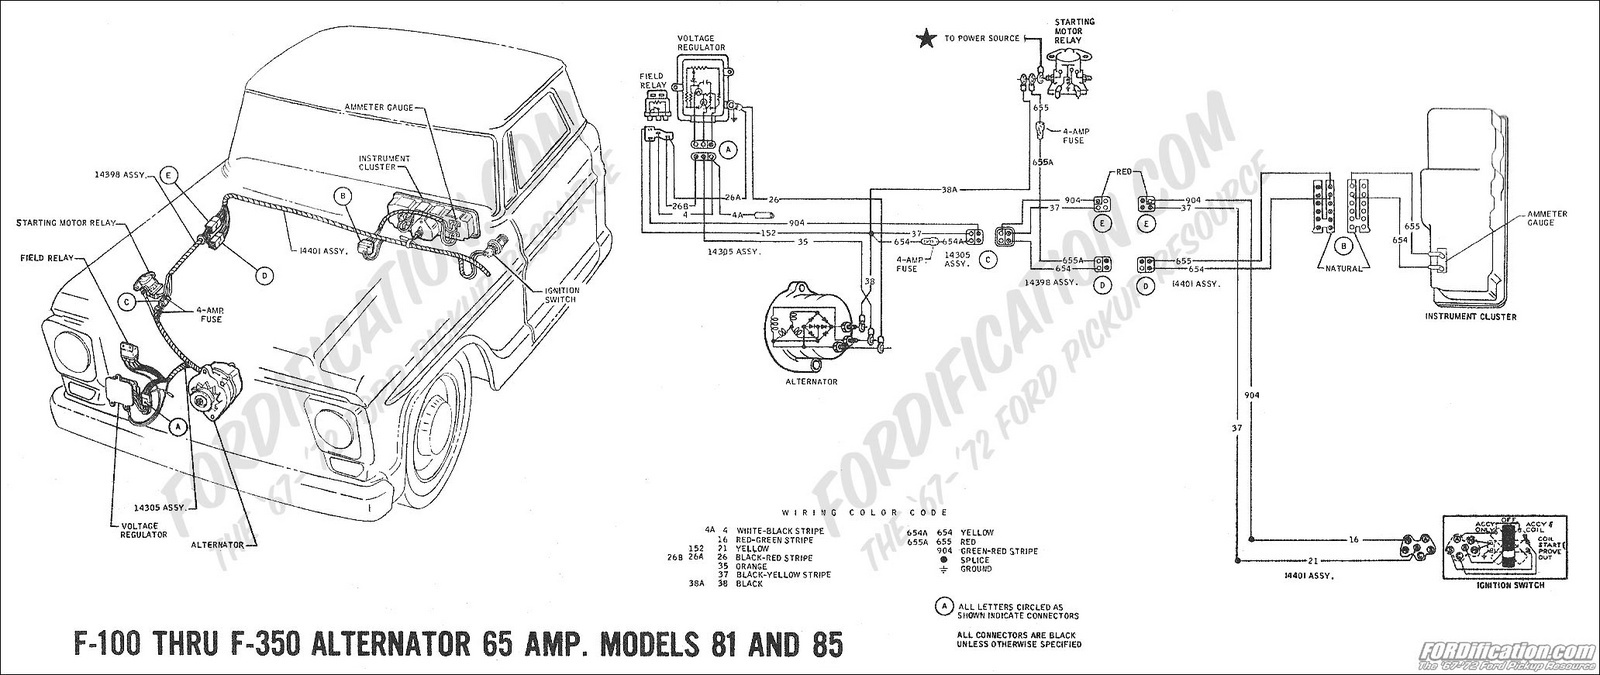 2004 Ford F 150 Fuse Box Diagram 2004 Ford F-250 Fuse